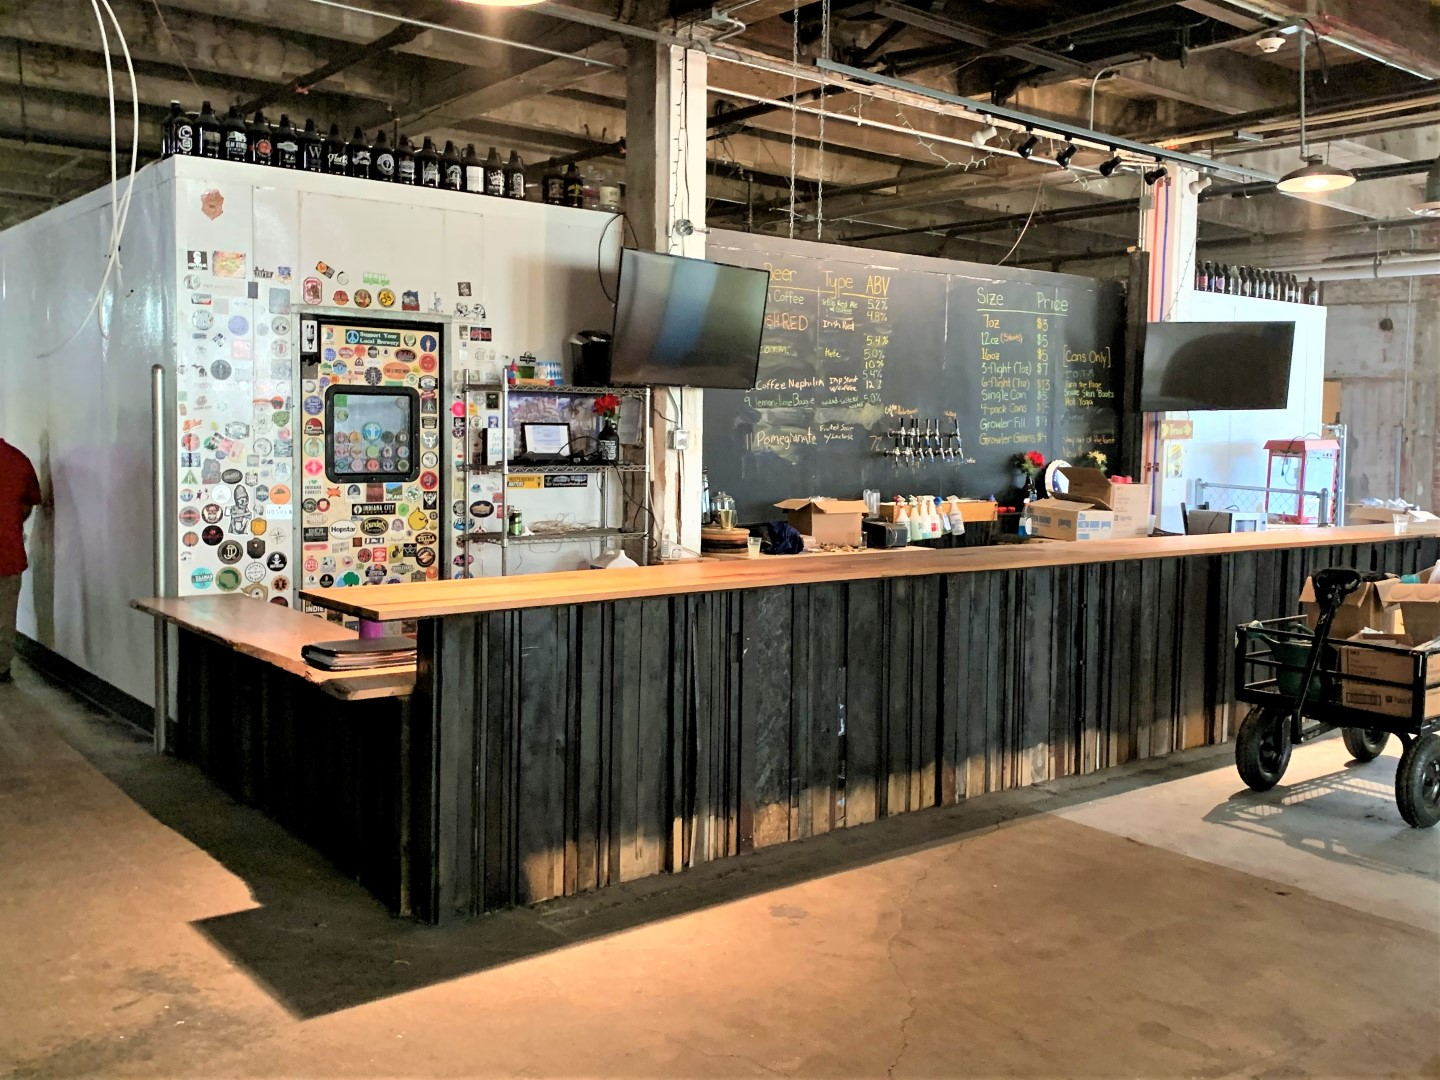 Round Town Brewing Online Auction in Indianapolis, IN - Key